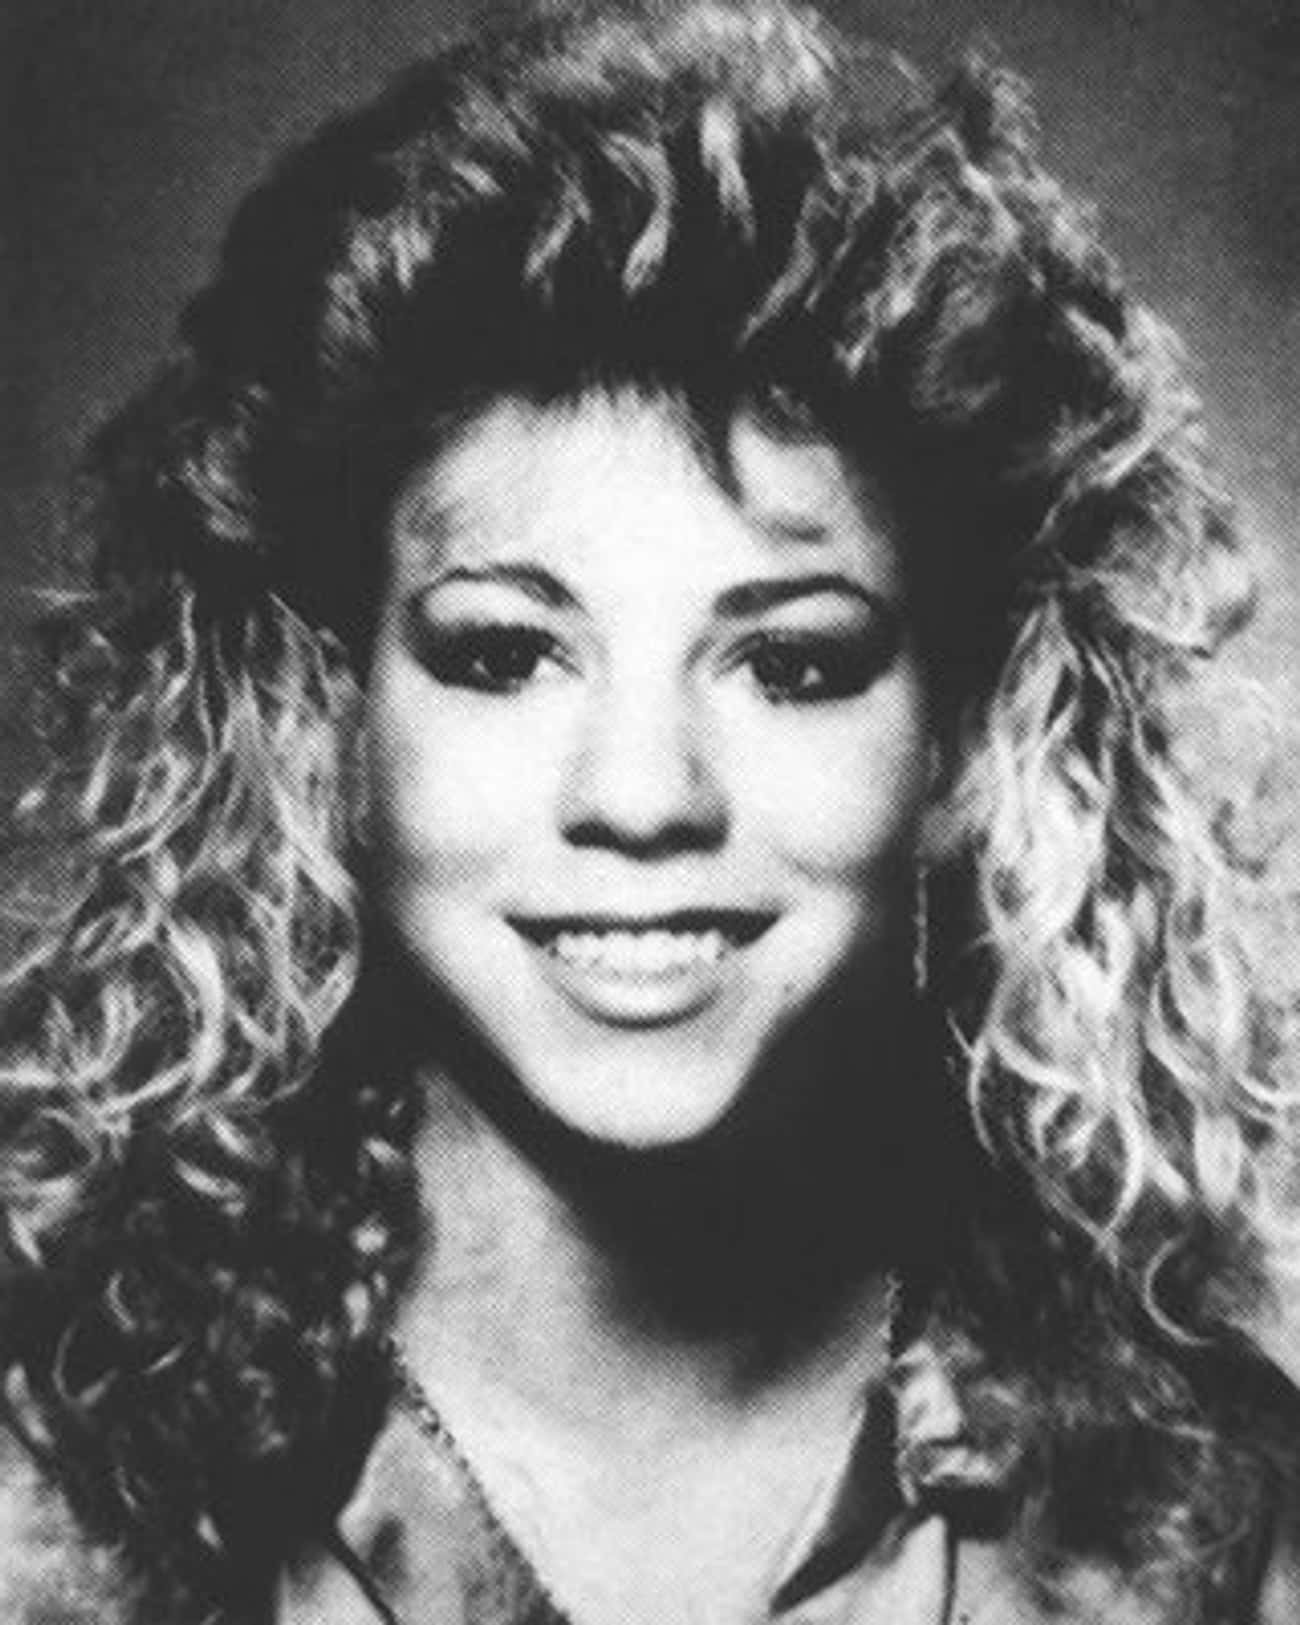 Young Mariah Carey Closeup Hea is listed (or ranked) 1 on the list 19 Pictures of Young Mariah Carey